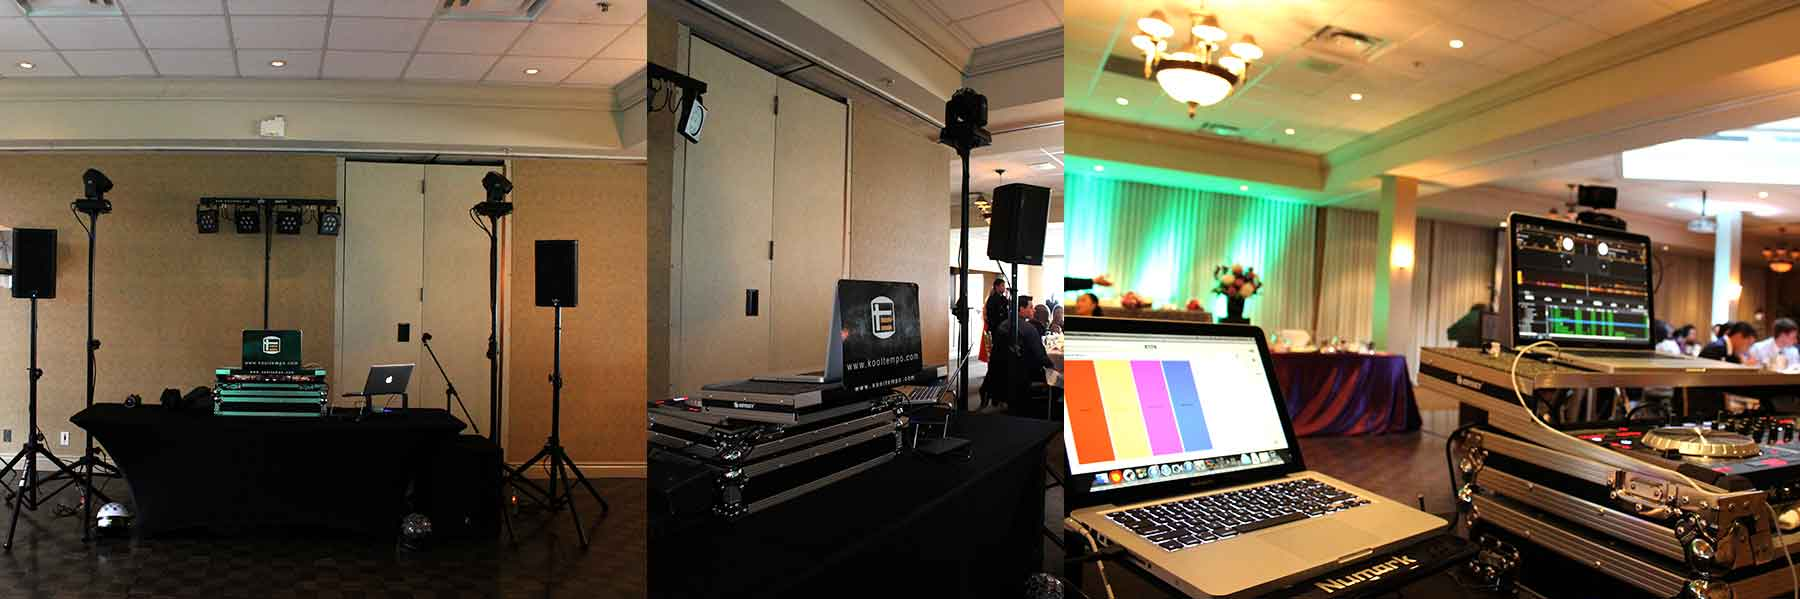 Wedding-DJ-Toronto-Set-up-at-Bayview-Golf-&-Country-Club